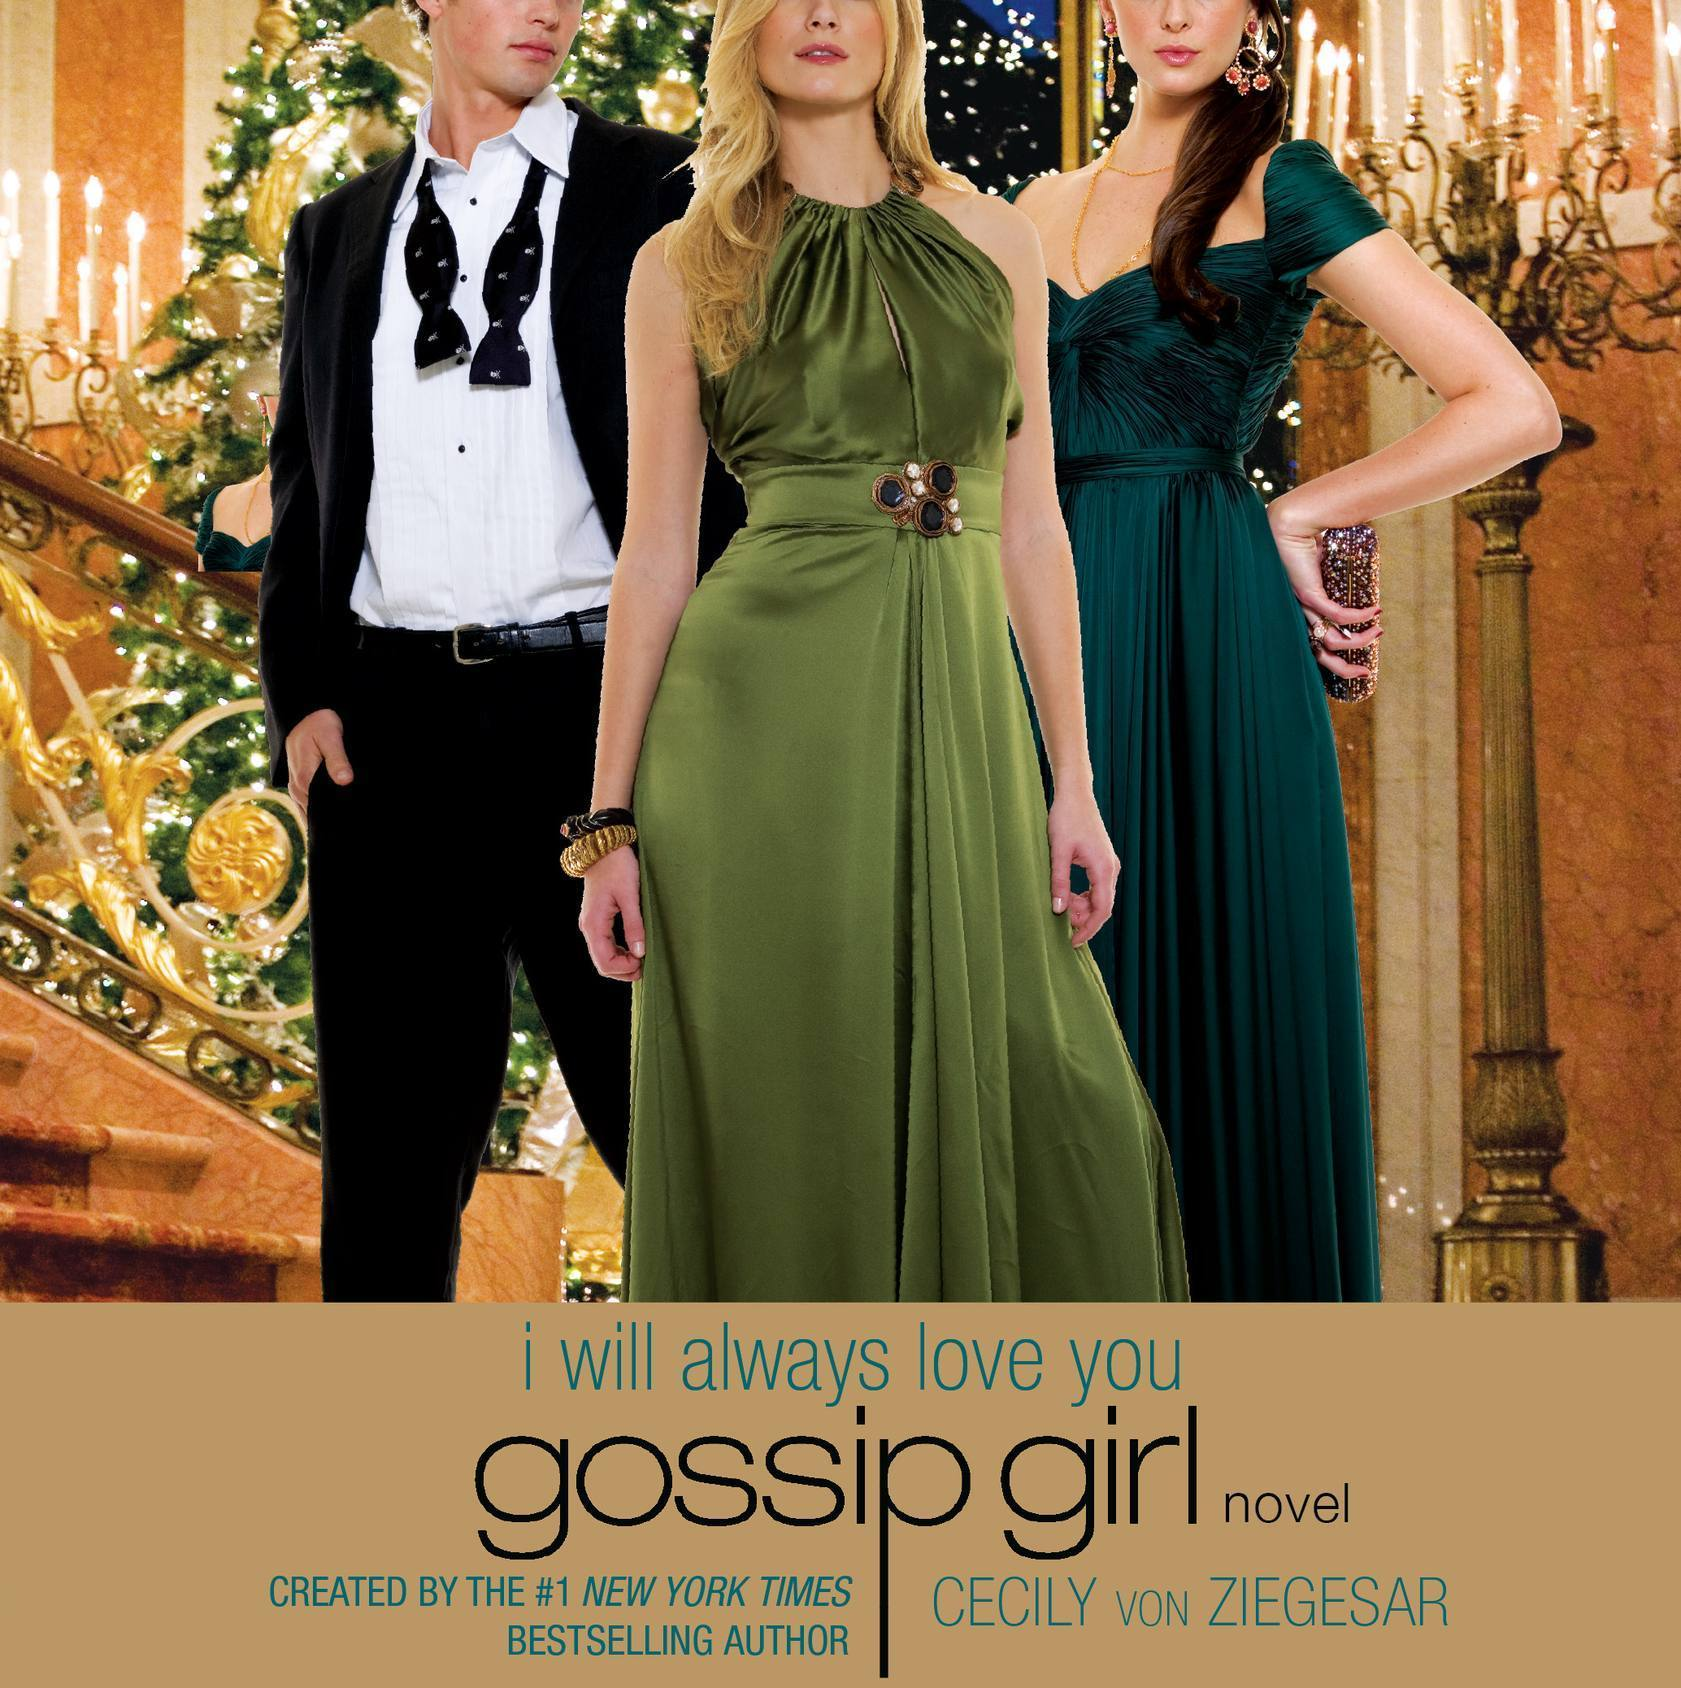 essay on the book gossip girl Gossip girl follows the lives of privileged teenagers on the upper east side  serena van der woodsen is a blonde and beautiful socialite everyone knows.